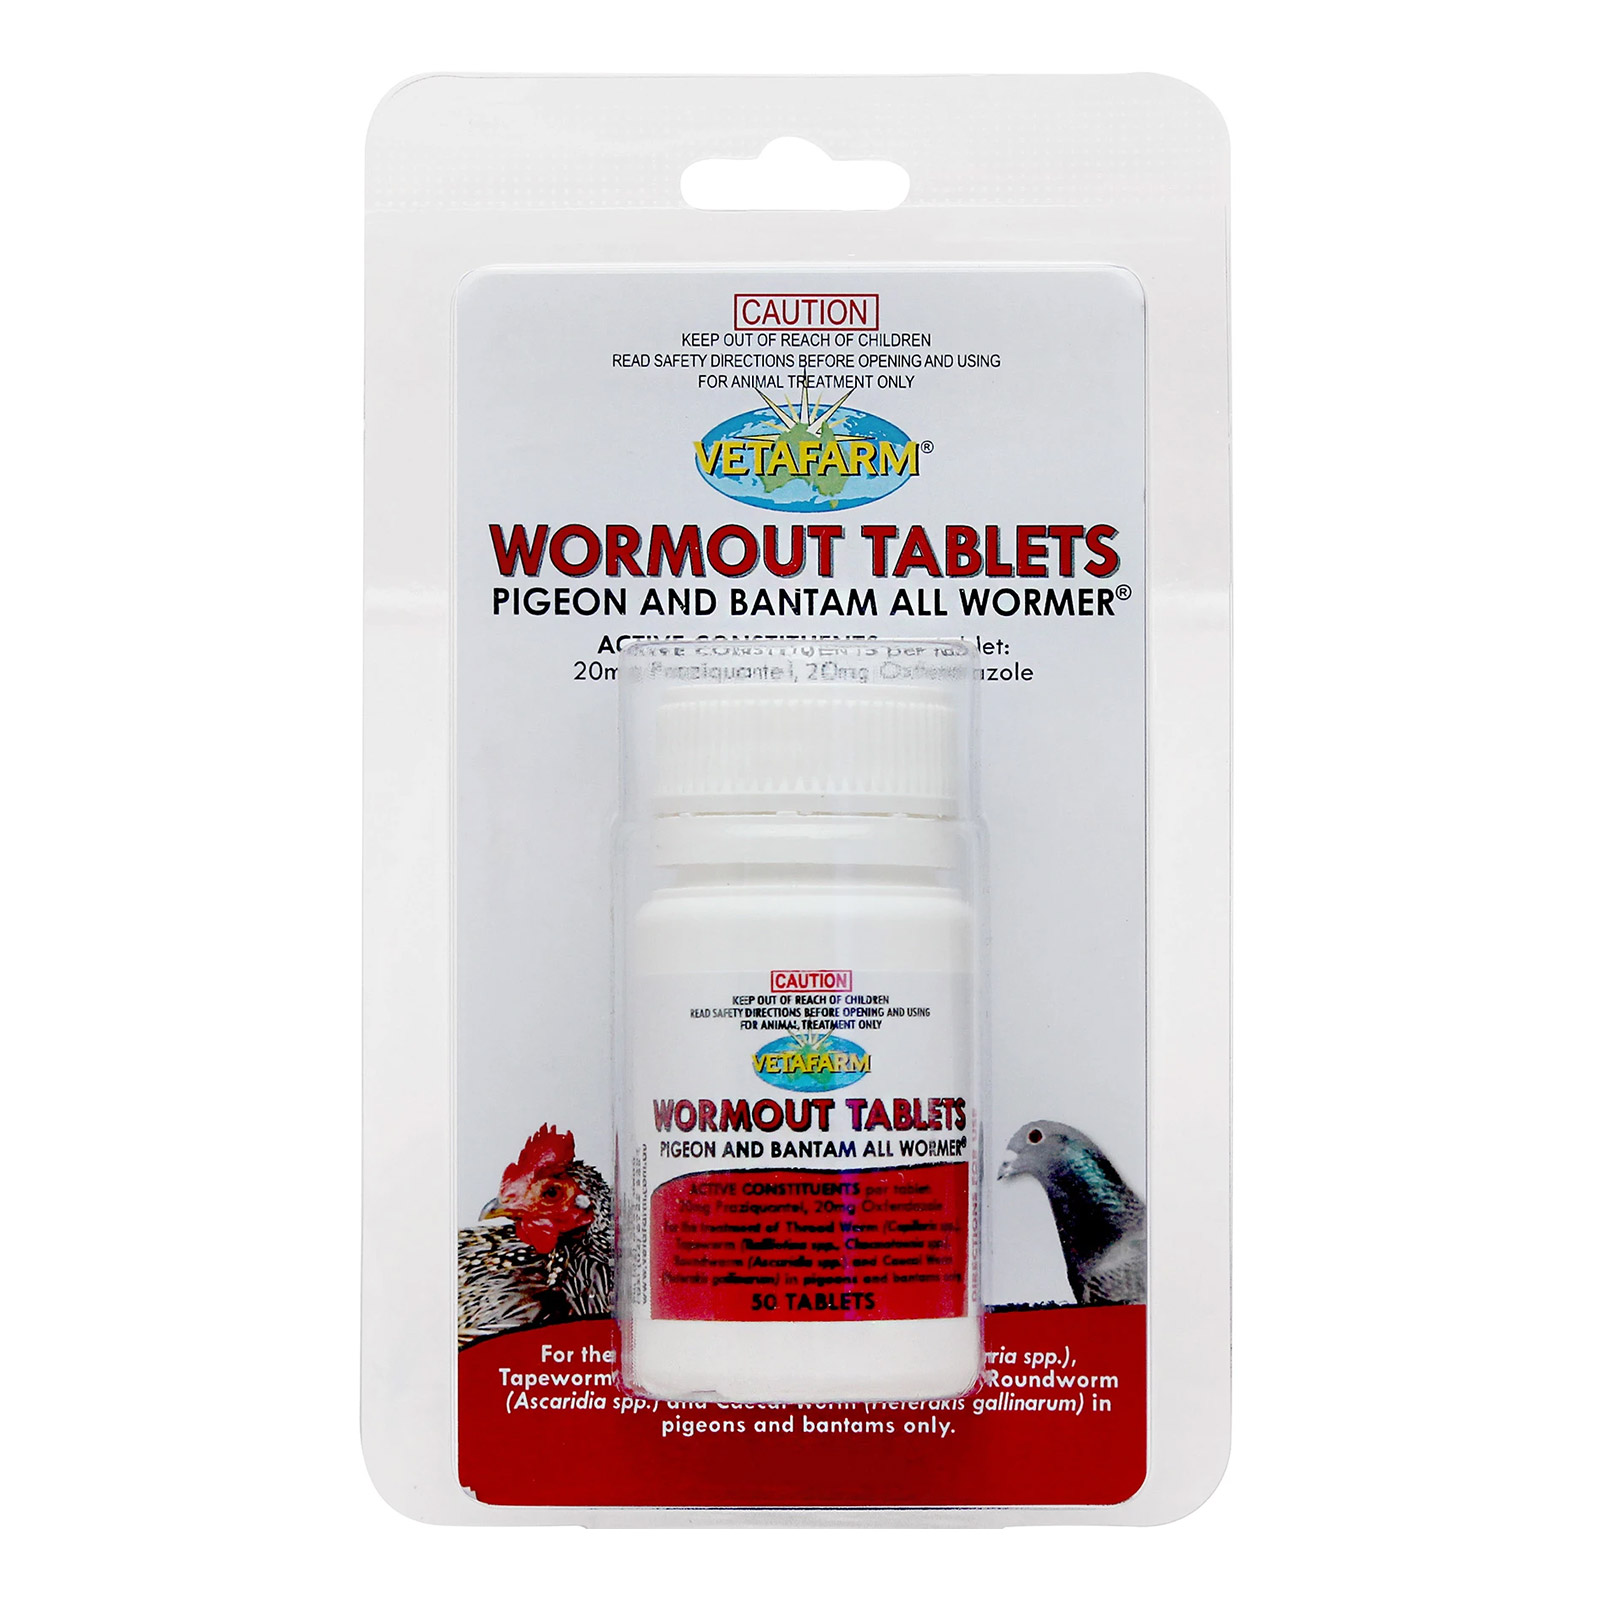 VetaFarm Wormout Tablets for Pigeons and Bantams Tablets